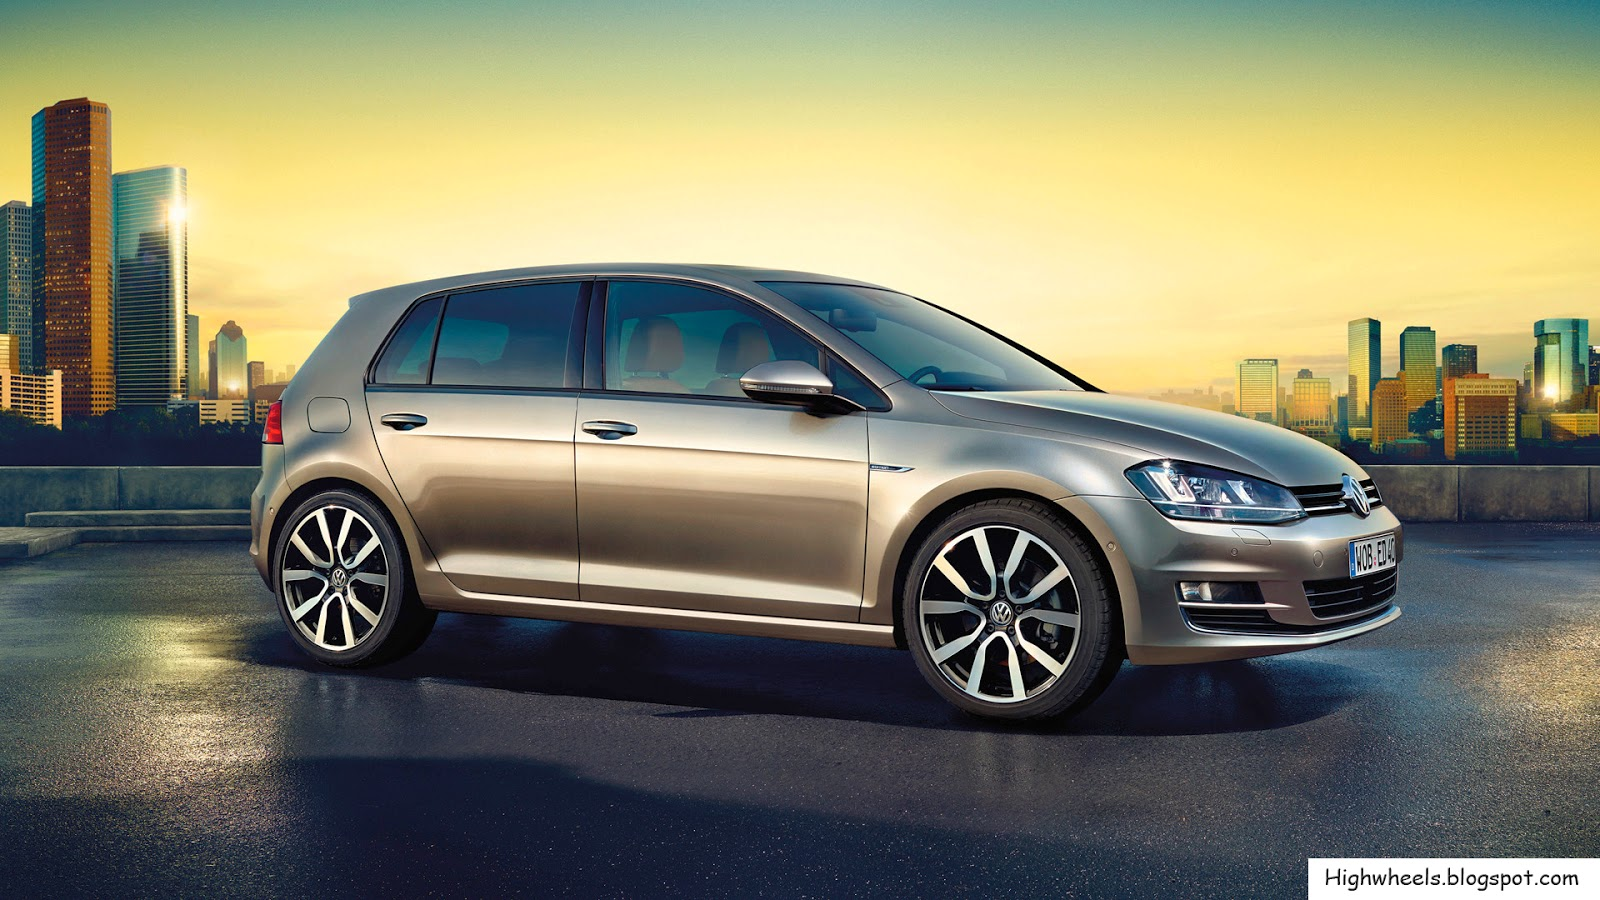 2015 Volkswagen Golf Edition High Wheels - Metallic Farben Golf 7